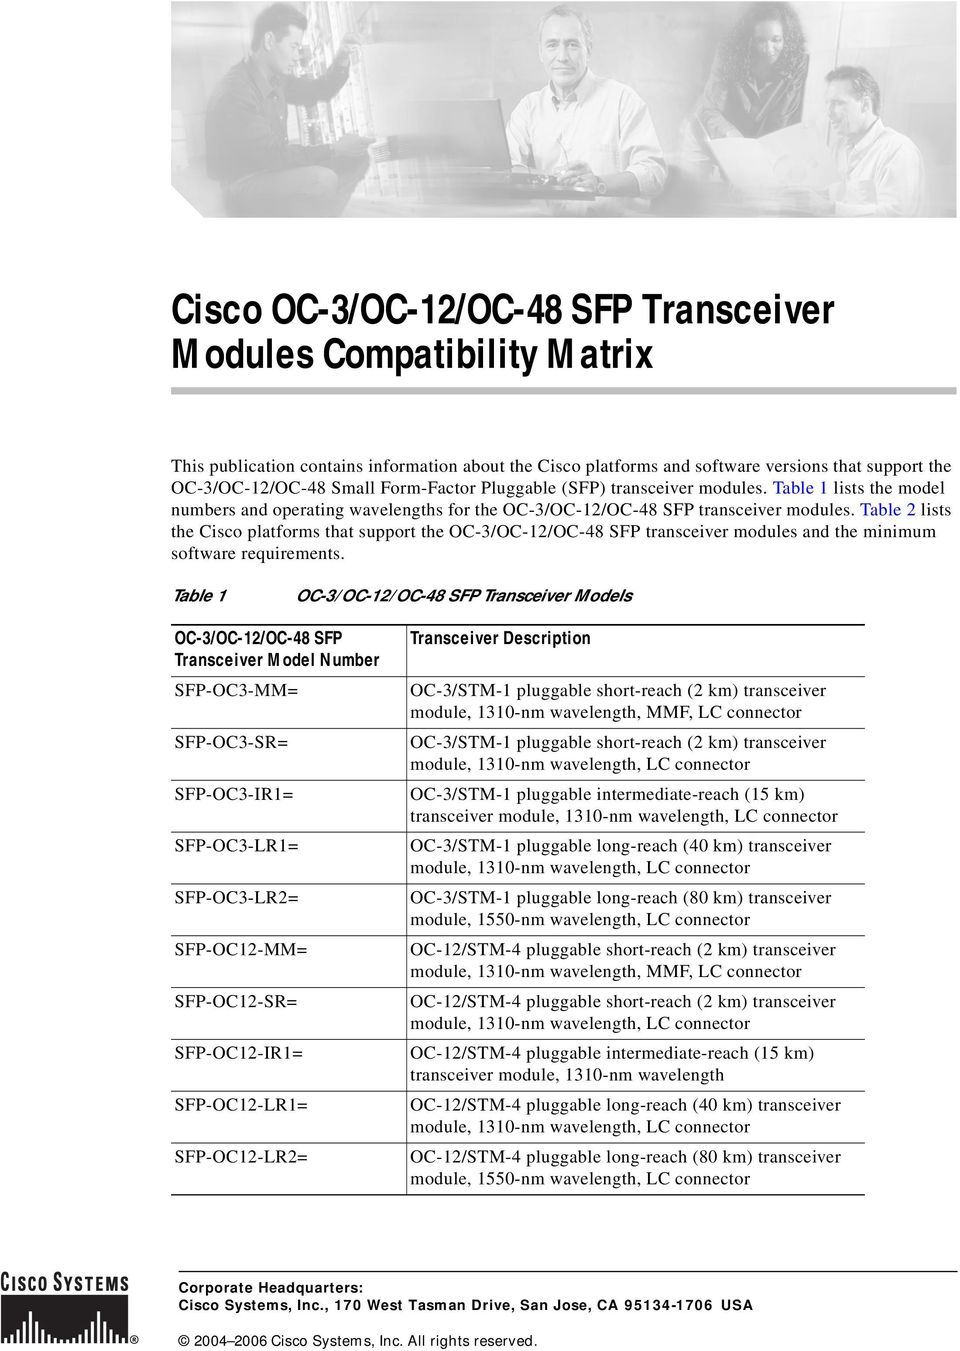 Table 2 lists the Cisco platforms that support the OC-3/OC-12/OC-48 SFP transceiver modules and the minimum software requirements.